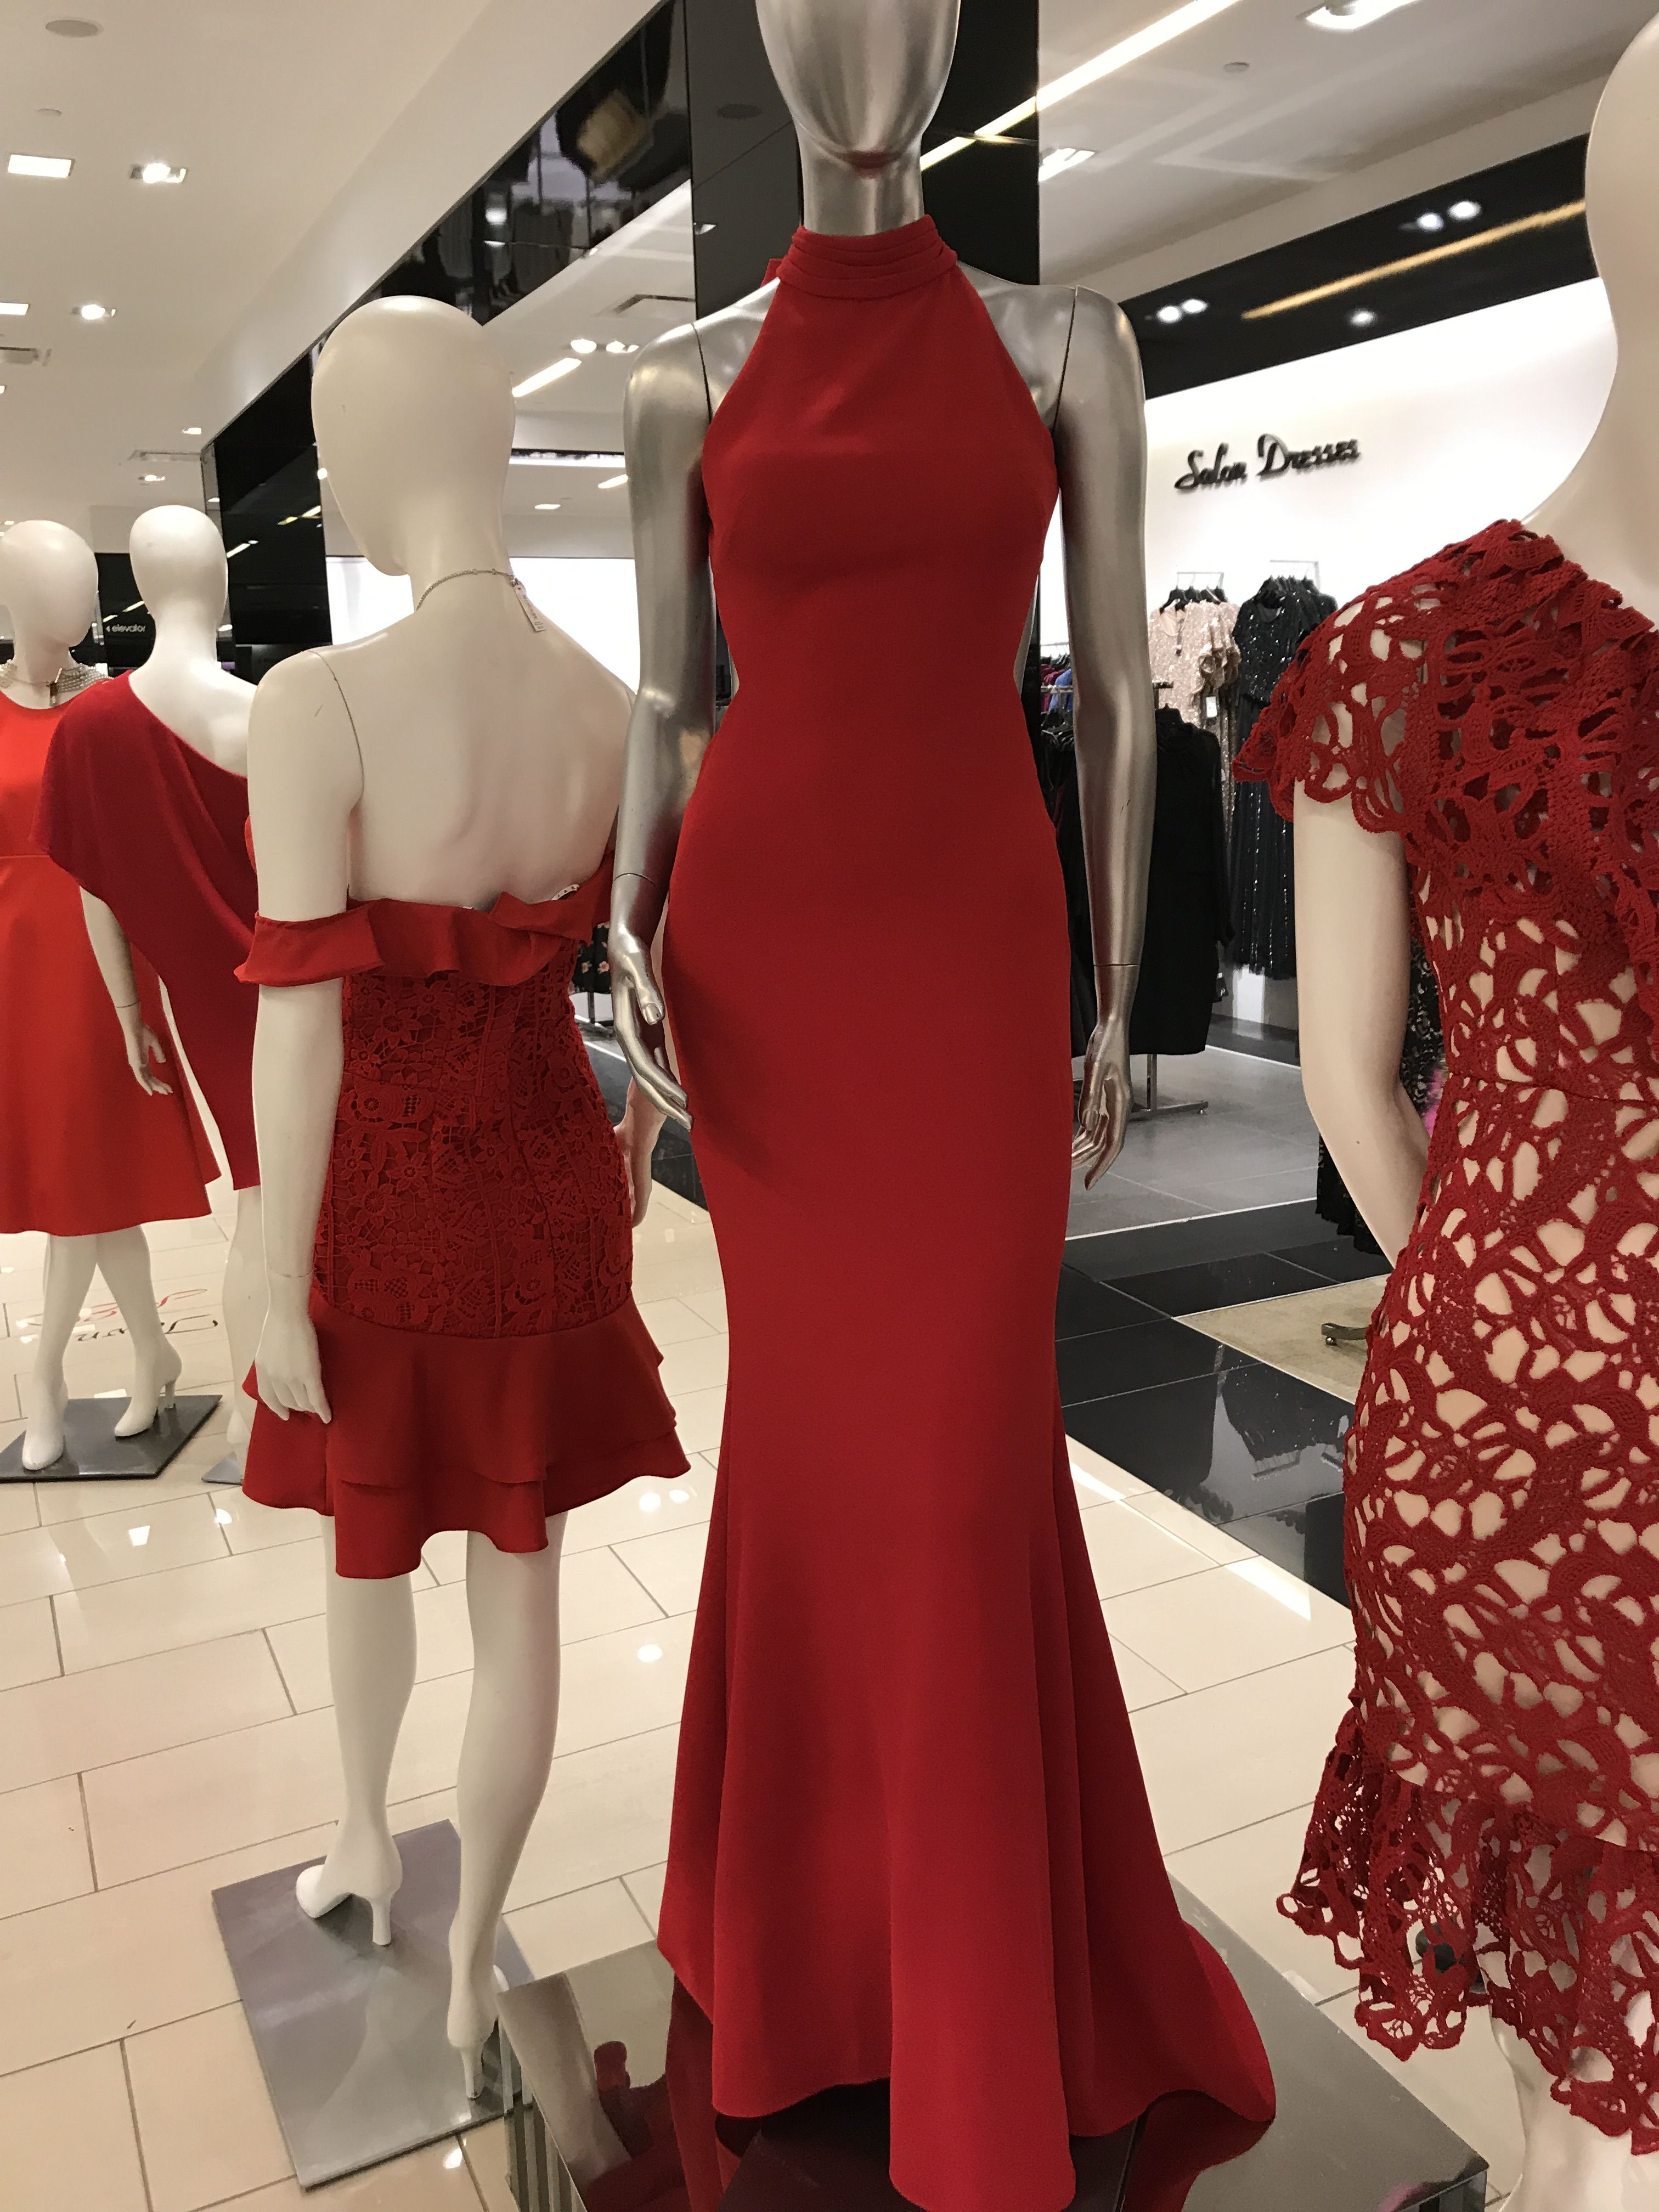 Avery G Dress Bloomingdales Evening Gowns Formal Dresses Gowns Online [ 4032 x 3024 Pixel ]